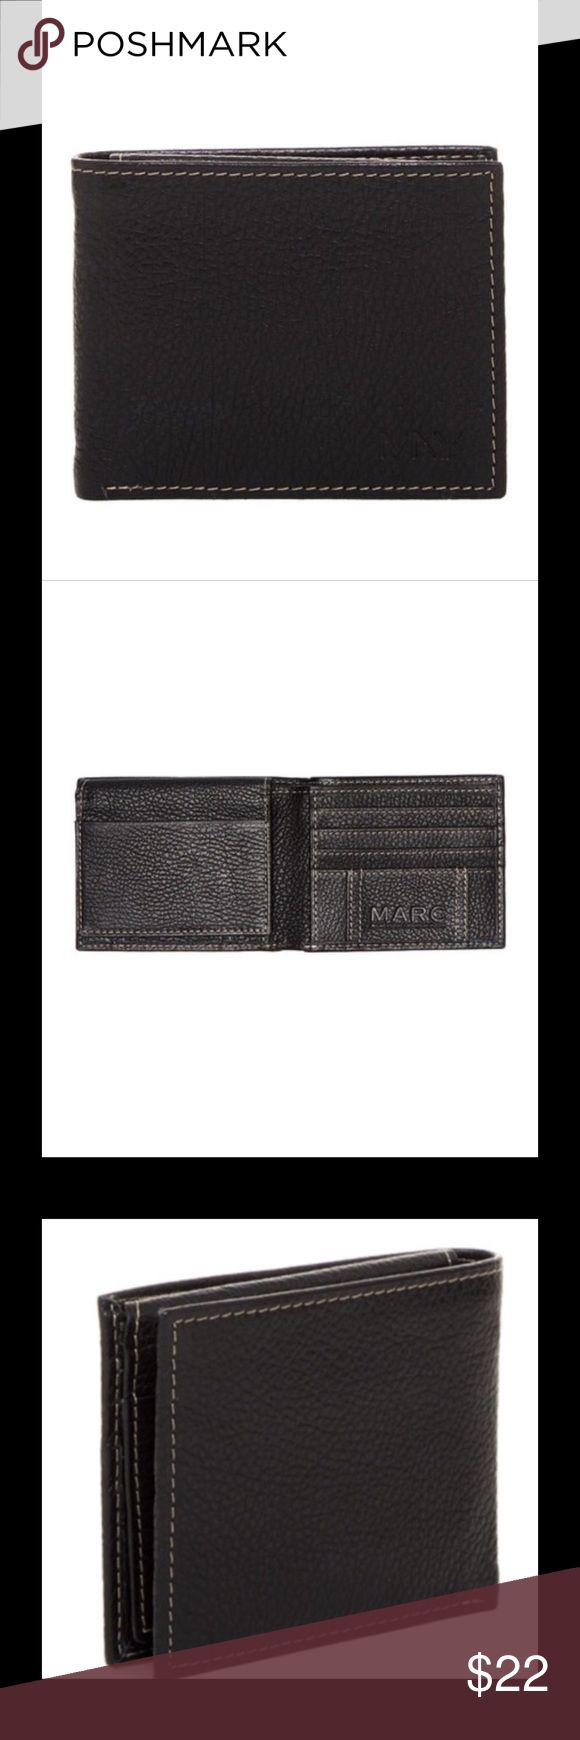 MARC WALLET SALE!PEBBLED LEATHER BLACK PASSCASE 🎁 MARC NEW YORK WALLET ORG. $60.00 PEBBLED LEATHER BLACK BY ANDREW MARC PASSCASE 🎁in the box Marc Accessories